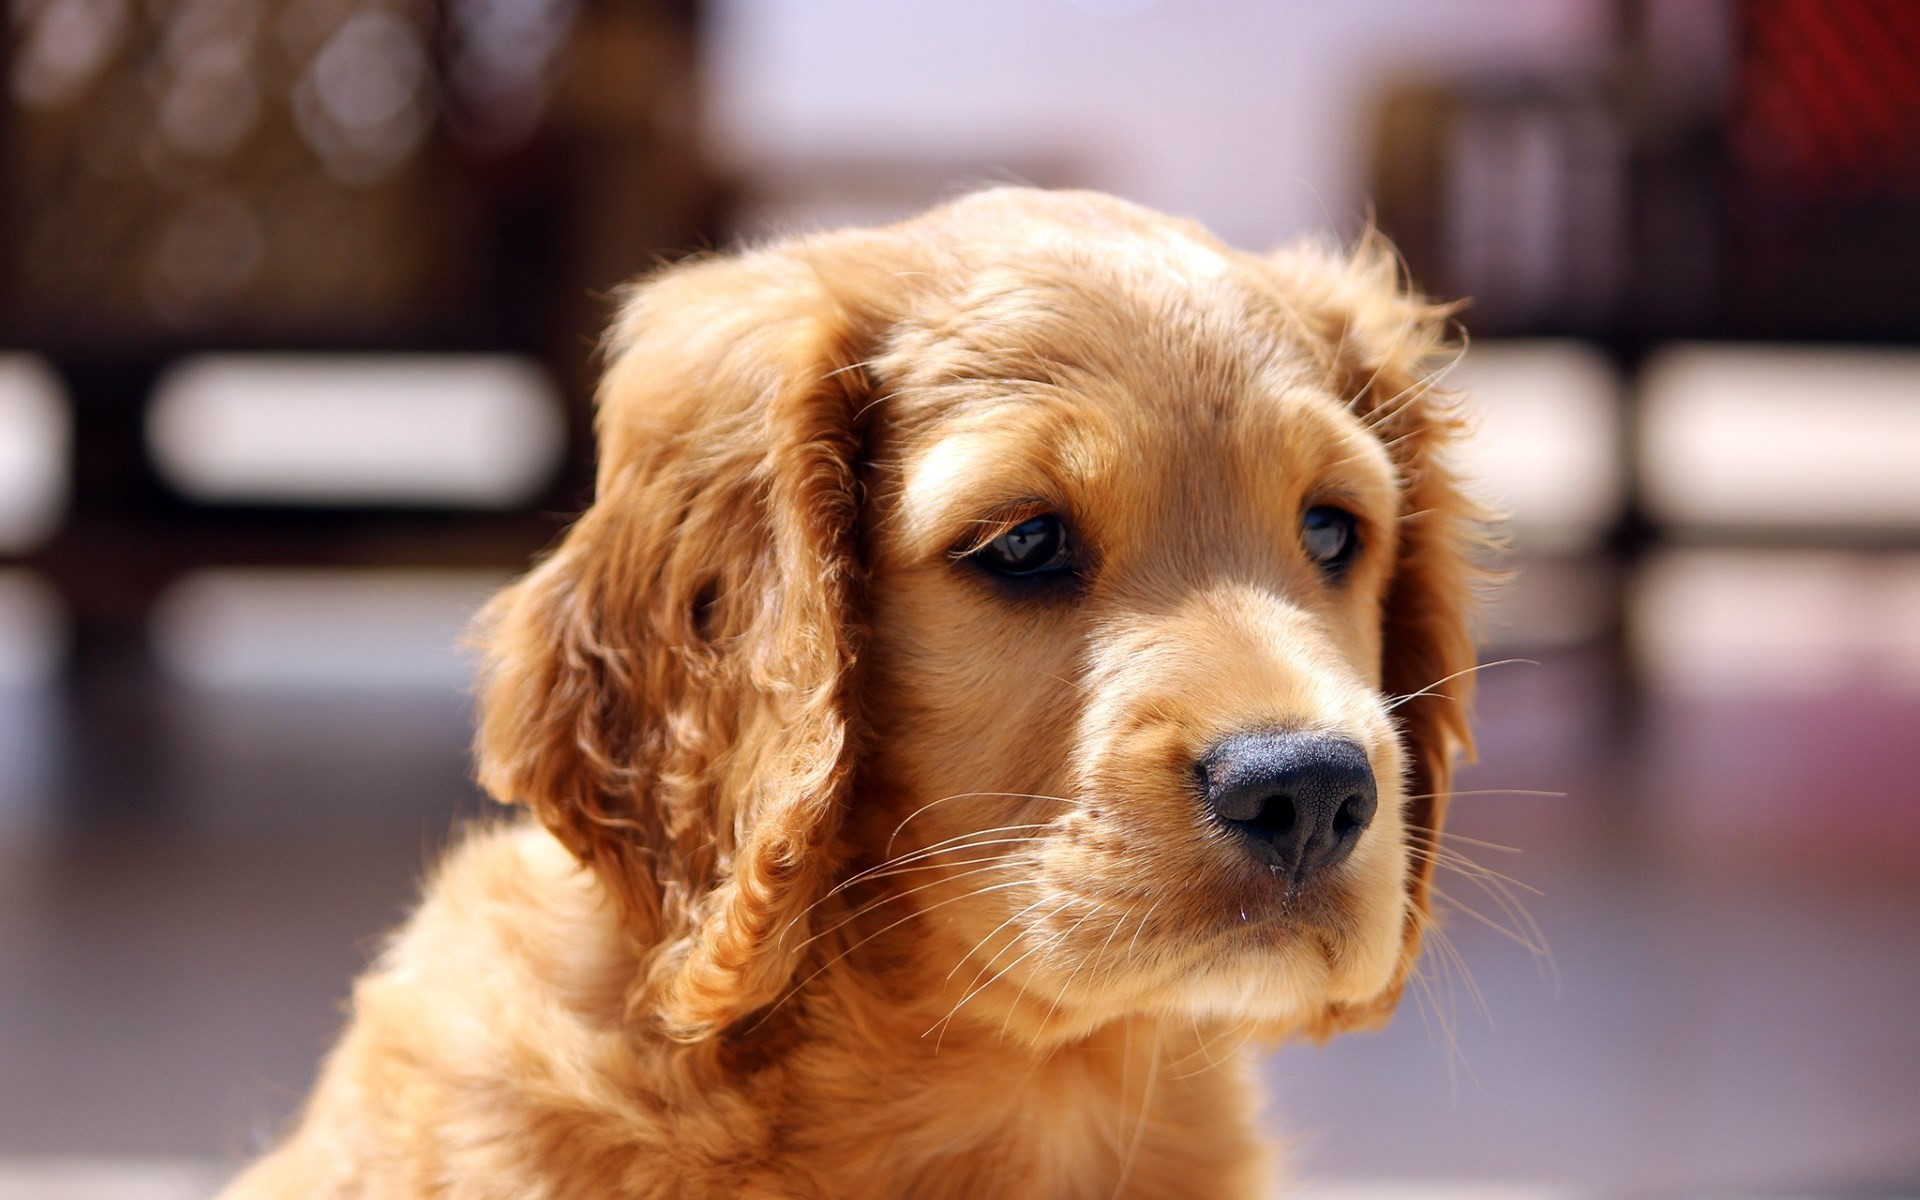 Adorable puppy wallpaper 1920x1200